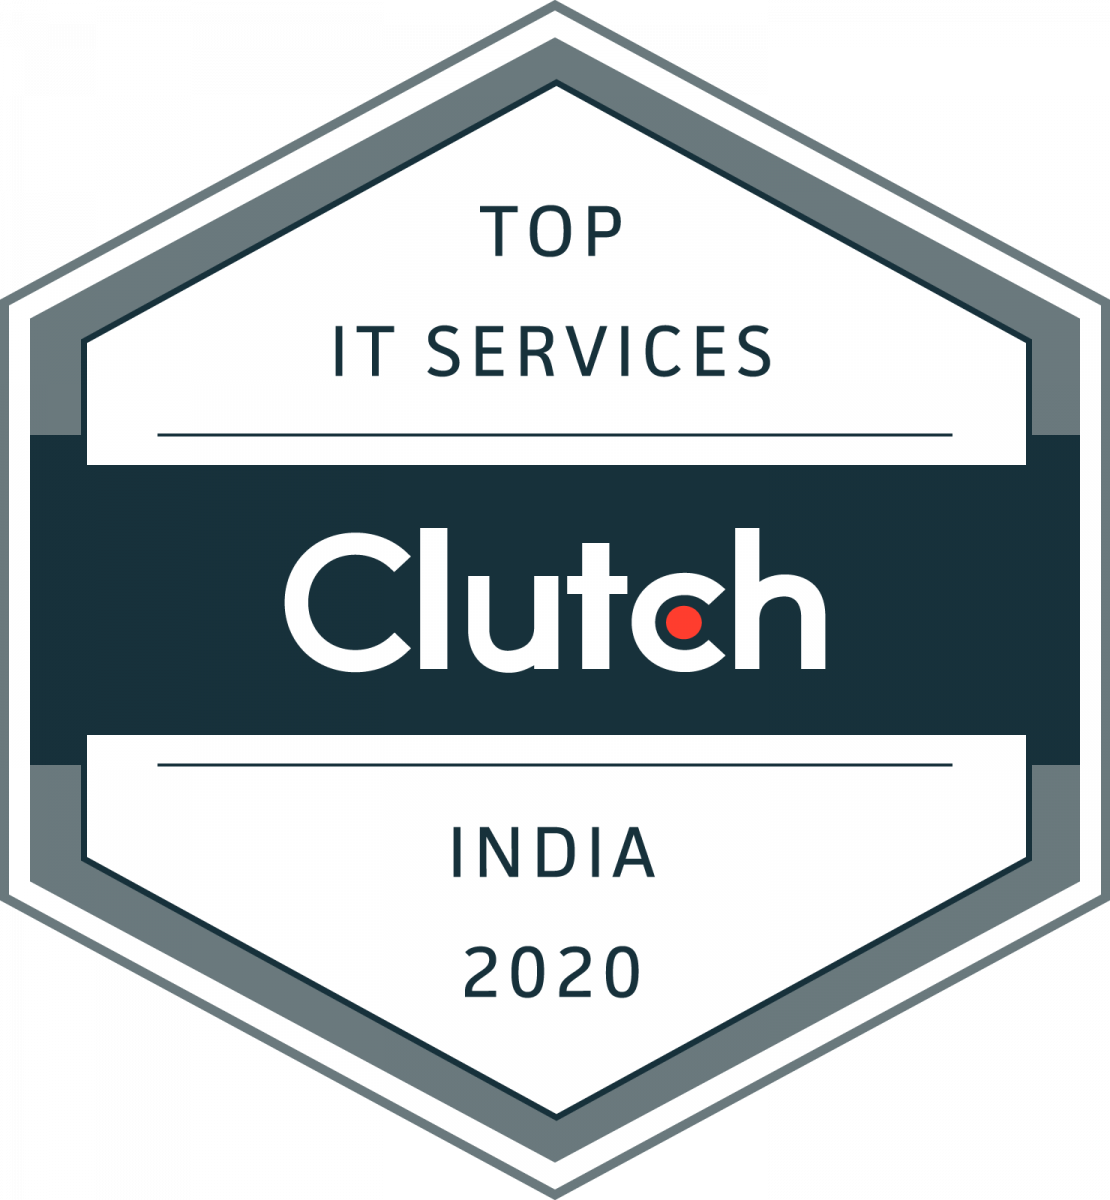 India IT services leaders 2020